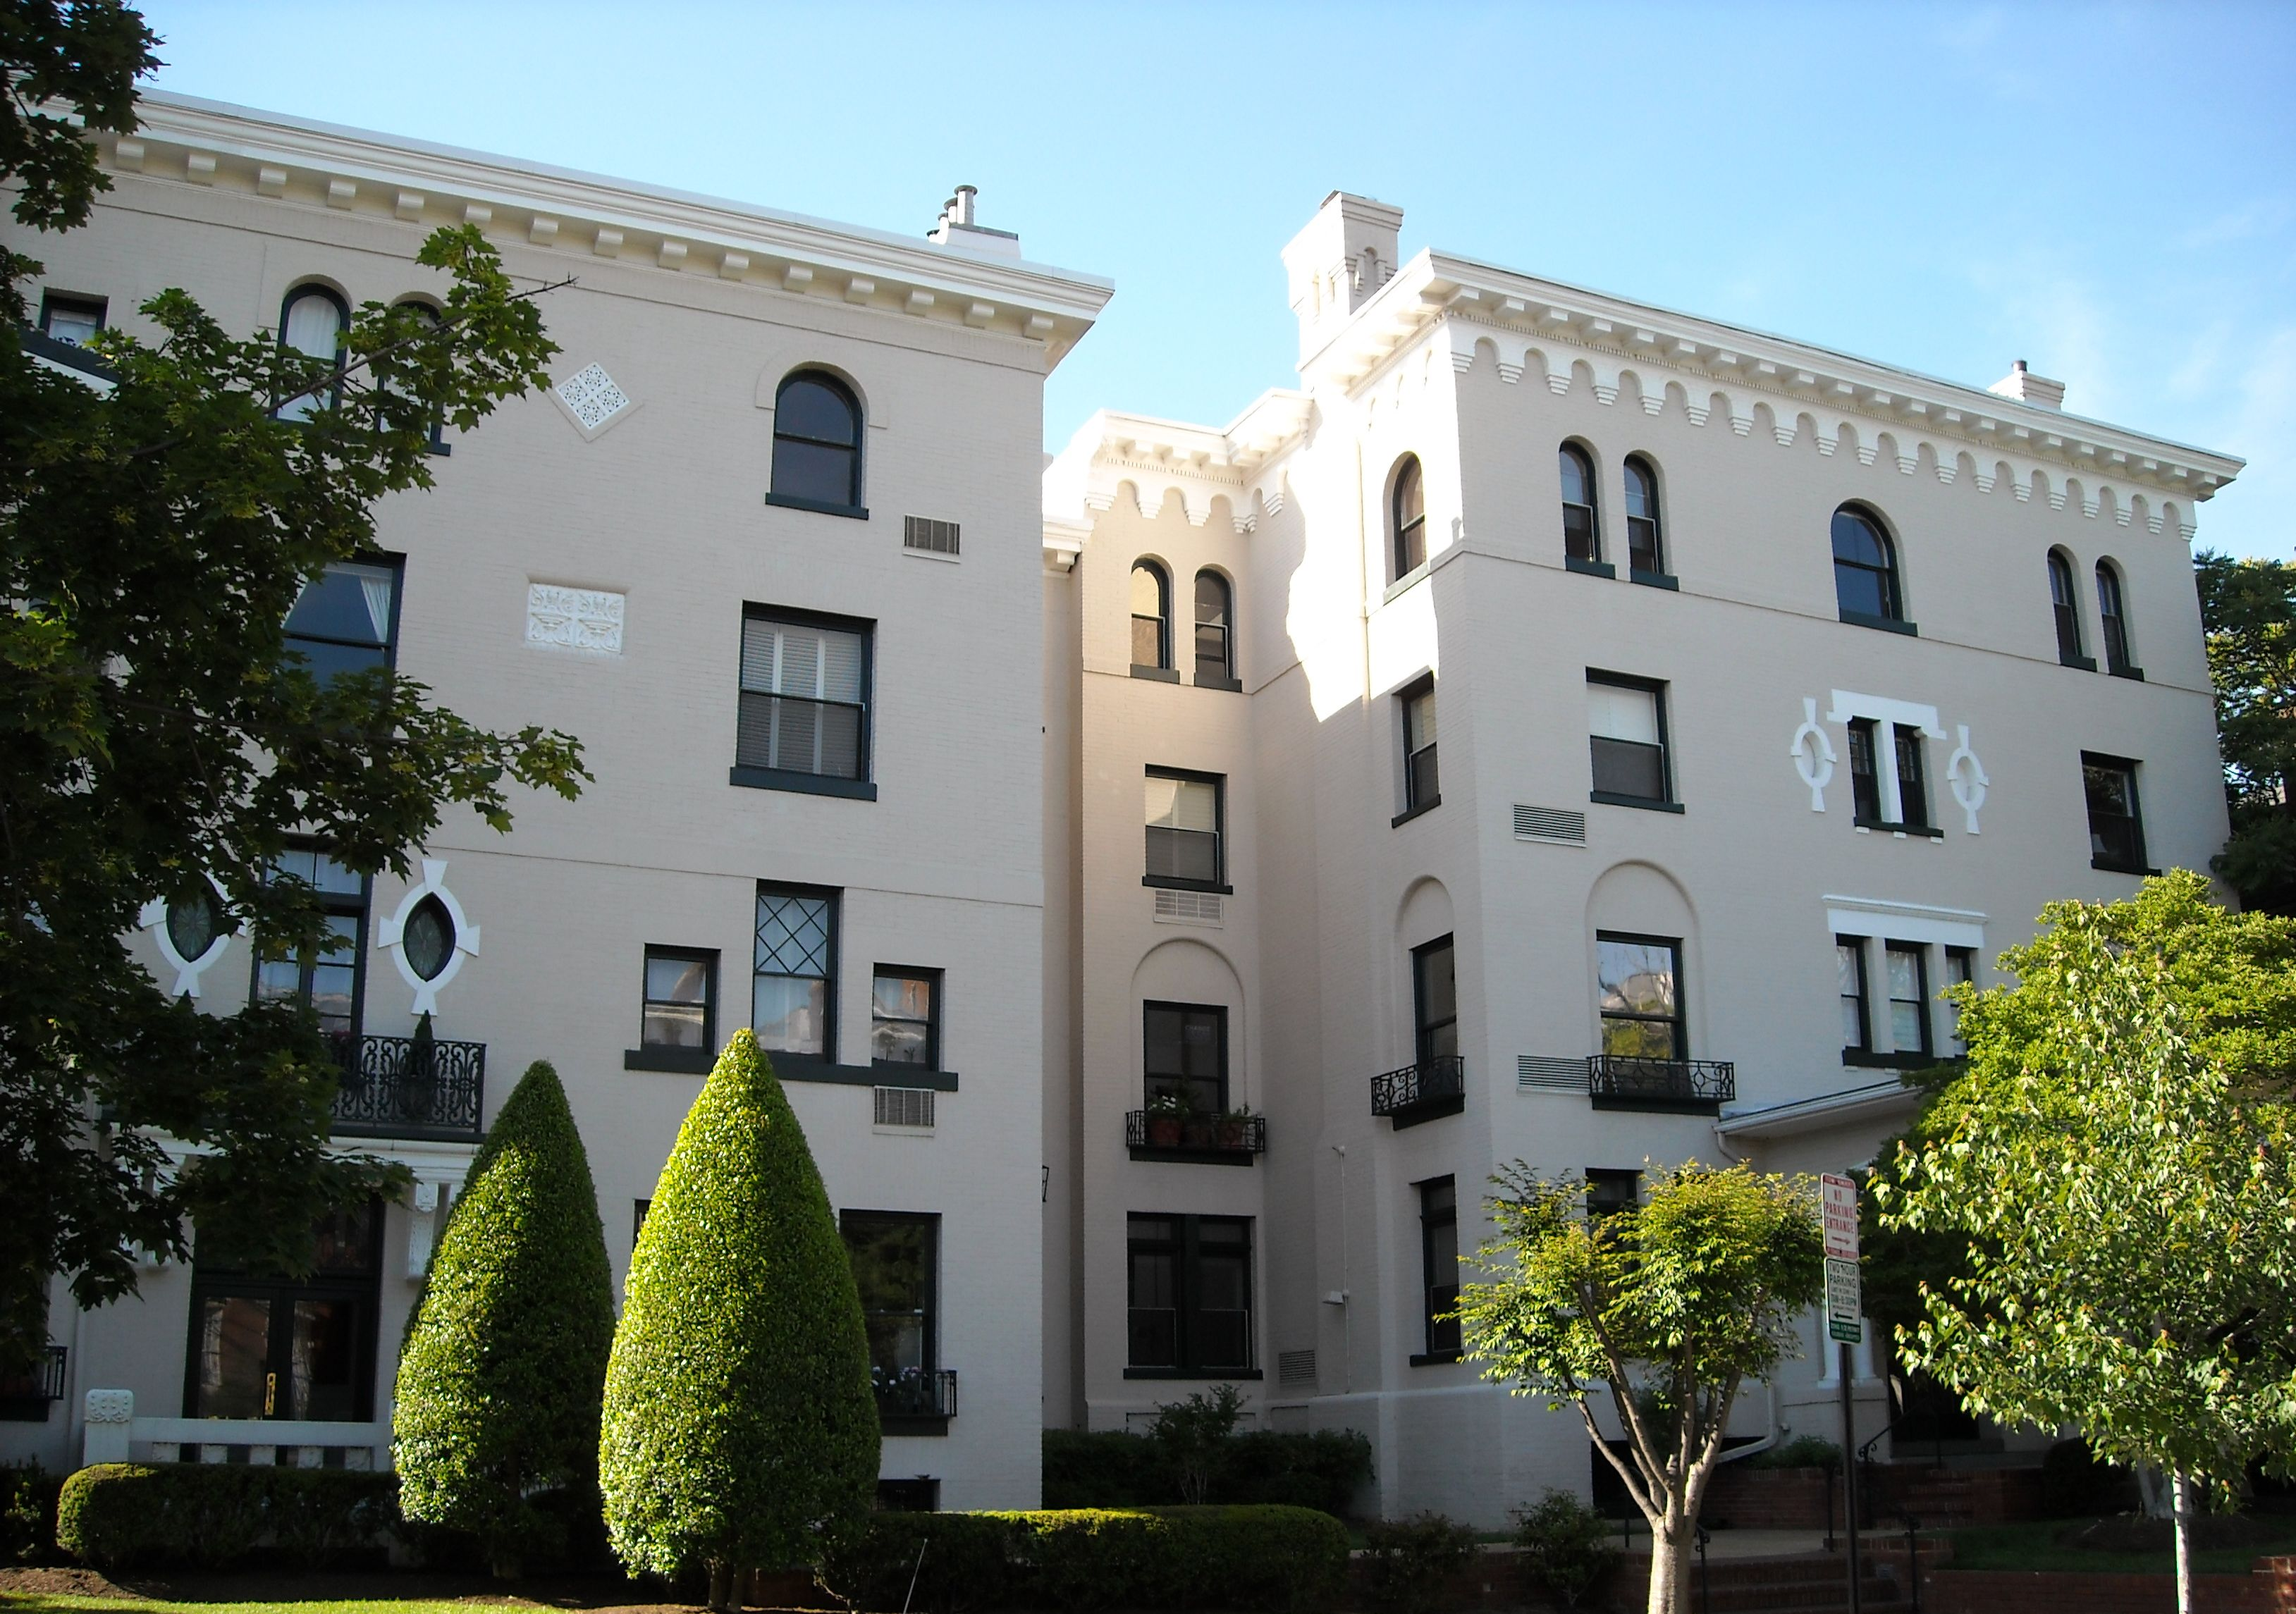 Exterior view of Windsor Lodge Apartments, where Senator William E. Borah lived from 1913-1929 while serving in Congress. Image by AgnosticPreachersKid, Wikimedia.